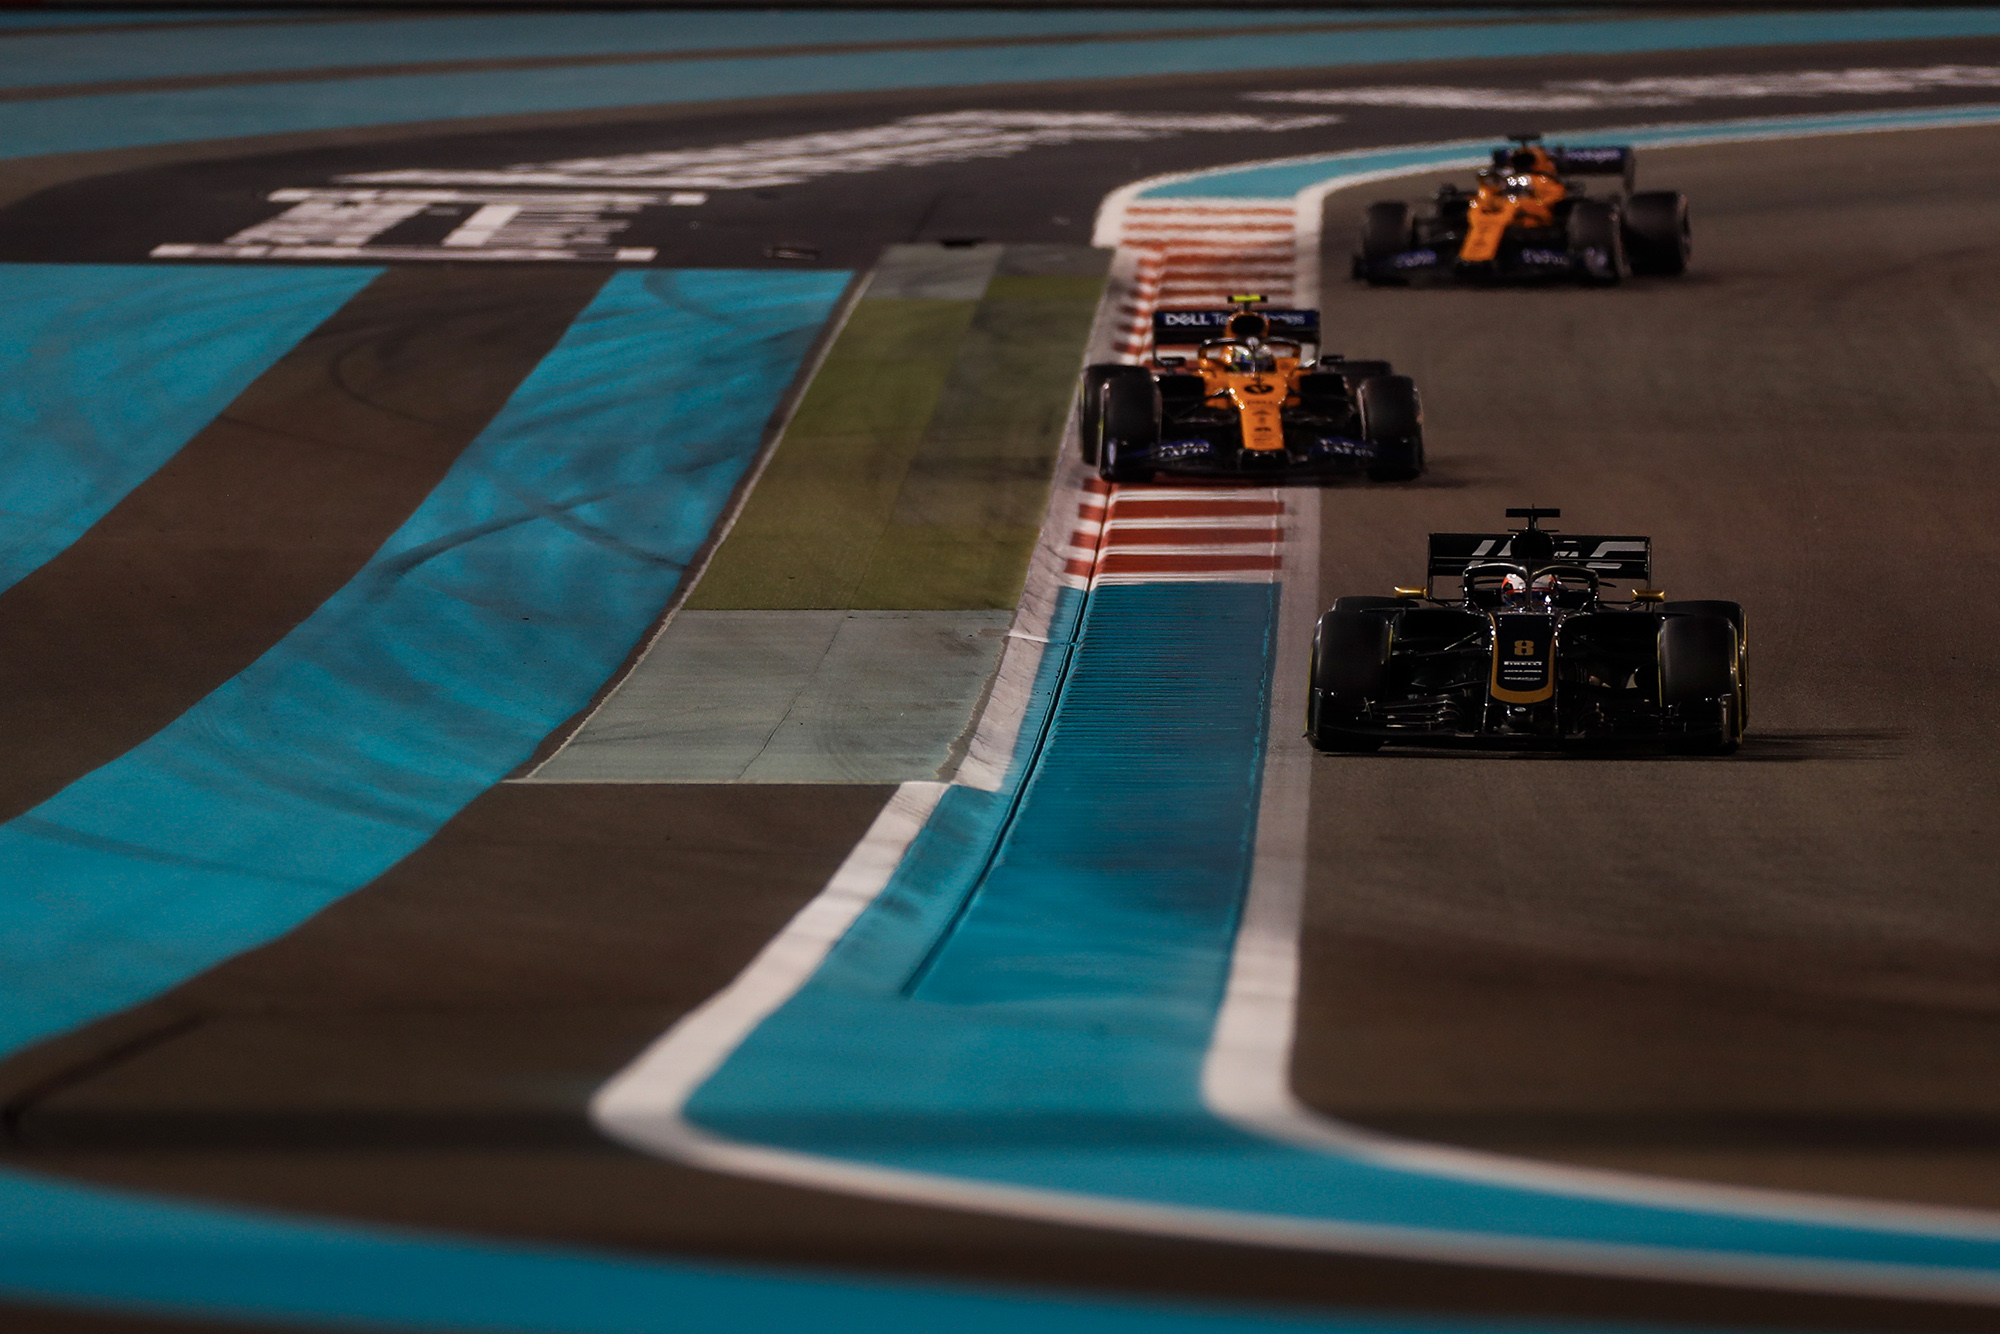 Romain Grosjean leads both McLarens during the 2019 Abu Dhabi Grand Prix